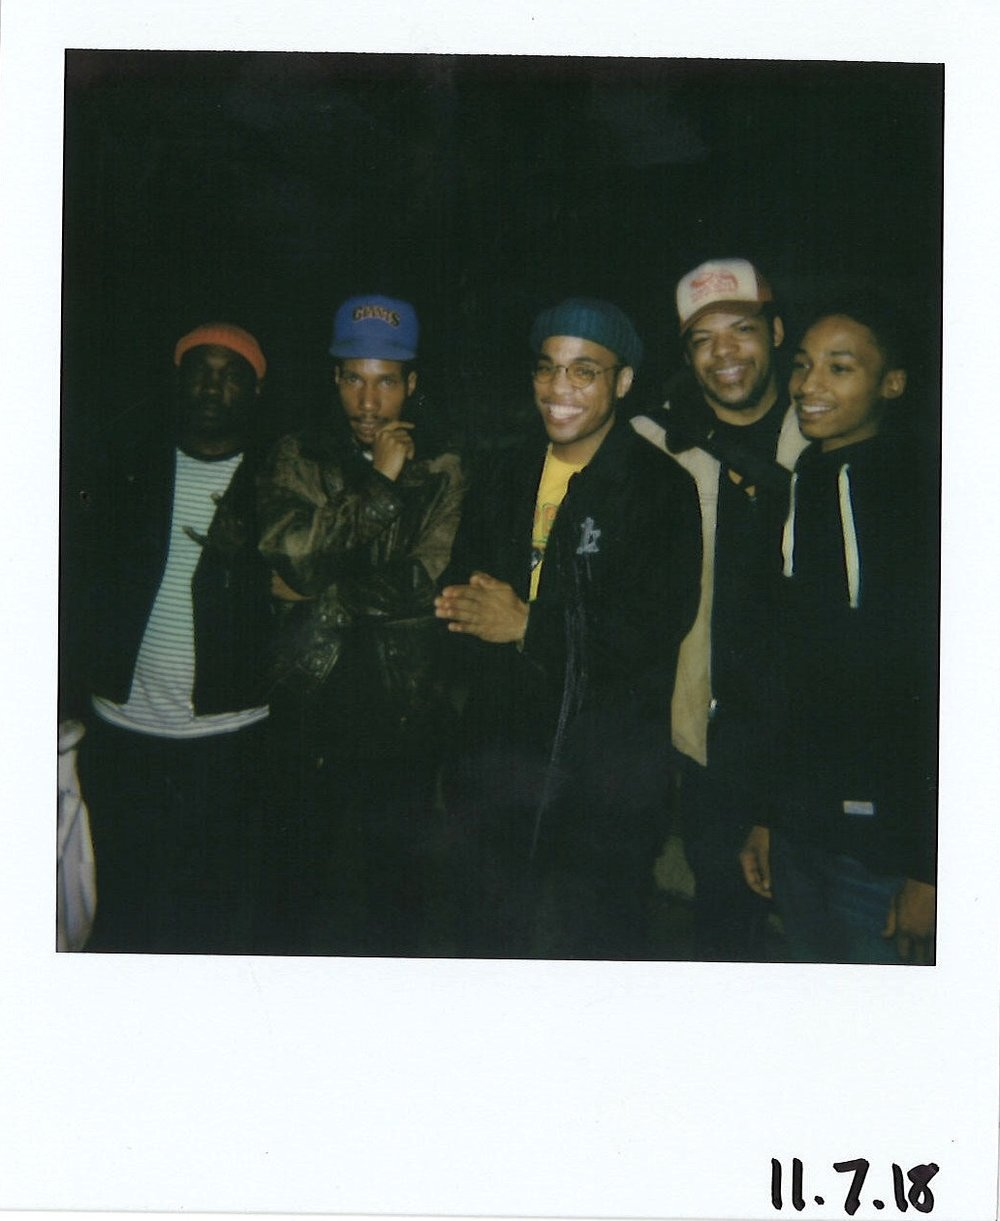 Nag Champa band members from left: L.D. Lee, Jamal Gray, Dajando Smith, and Allen Jones with Anderson .Paak (center), (Not pictured: Elijah Easton and Kwesi Lee). Photograph by Maxwell Young